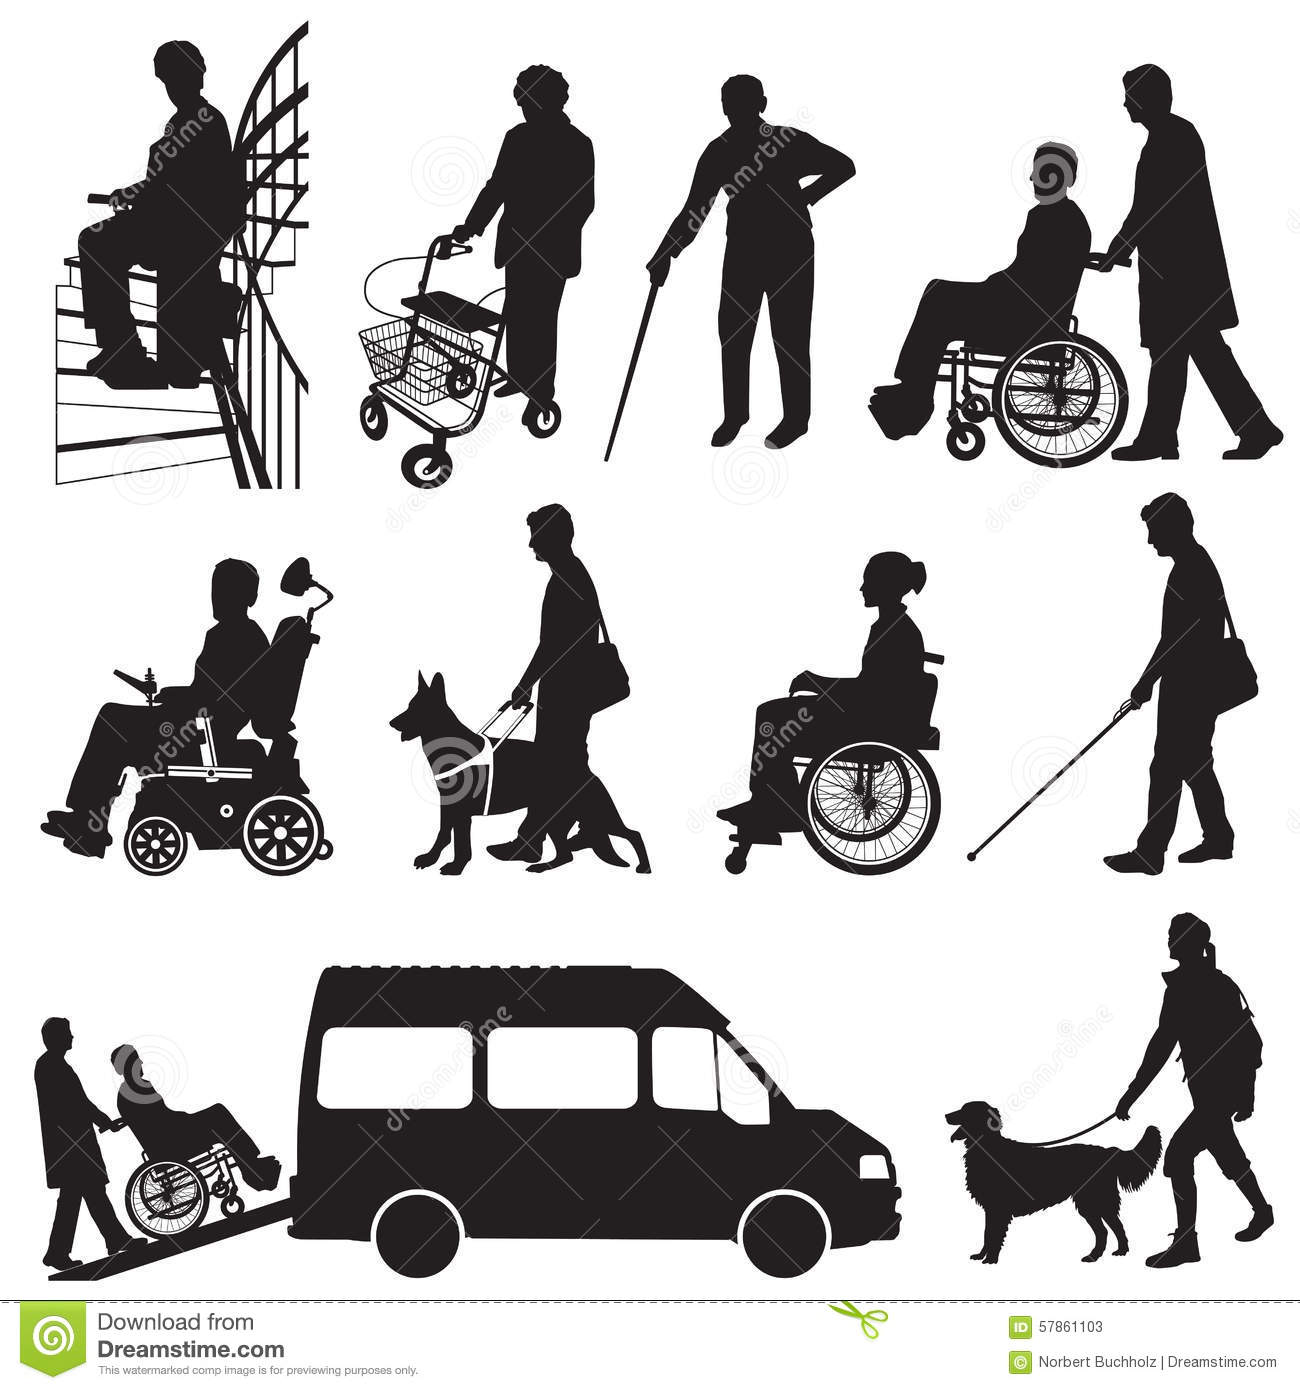 People with disabilities stock vector. Illustration of ...